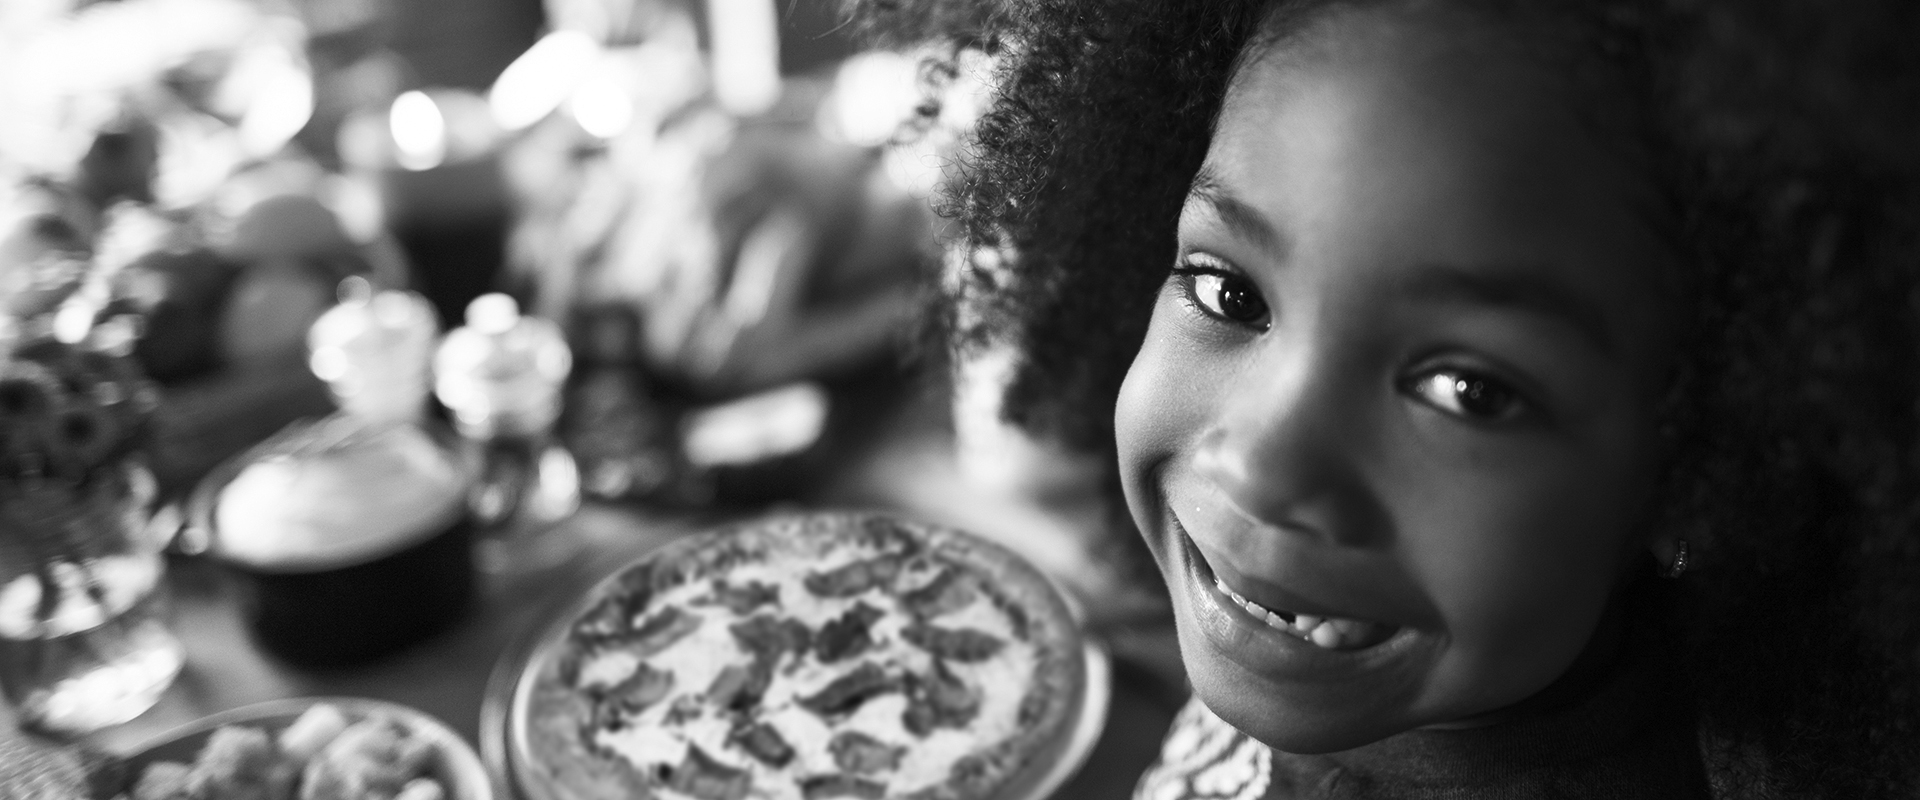 Photograph of child having pizza